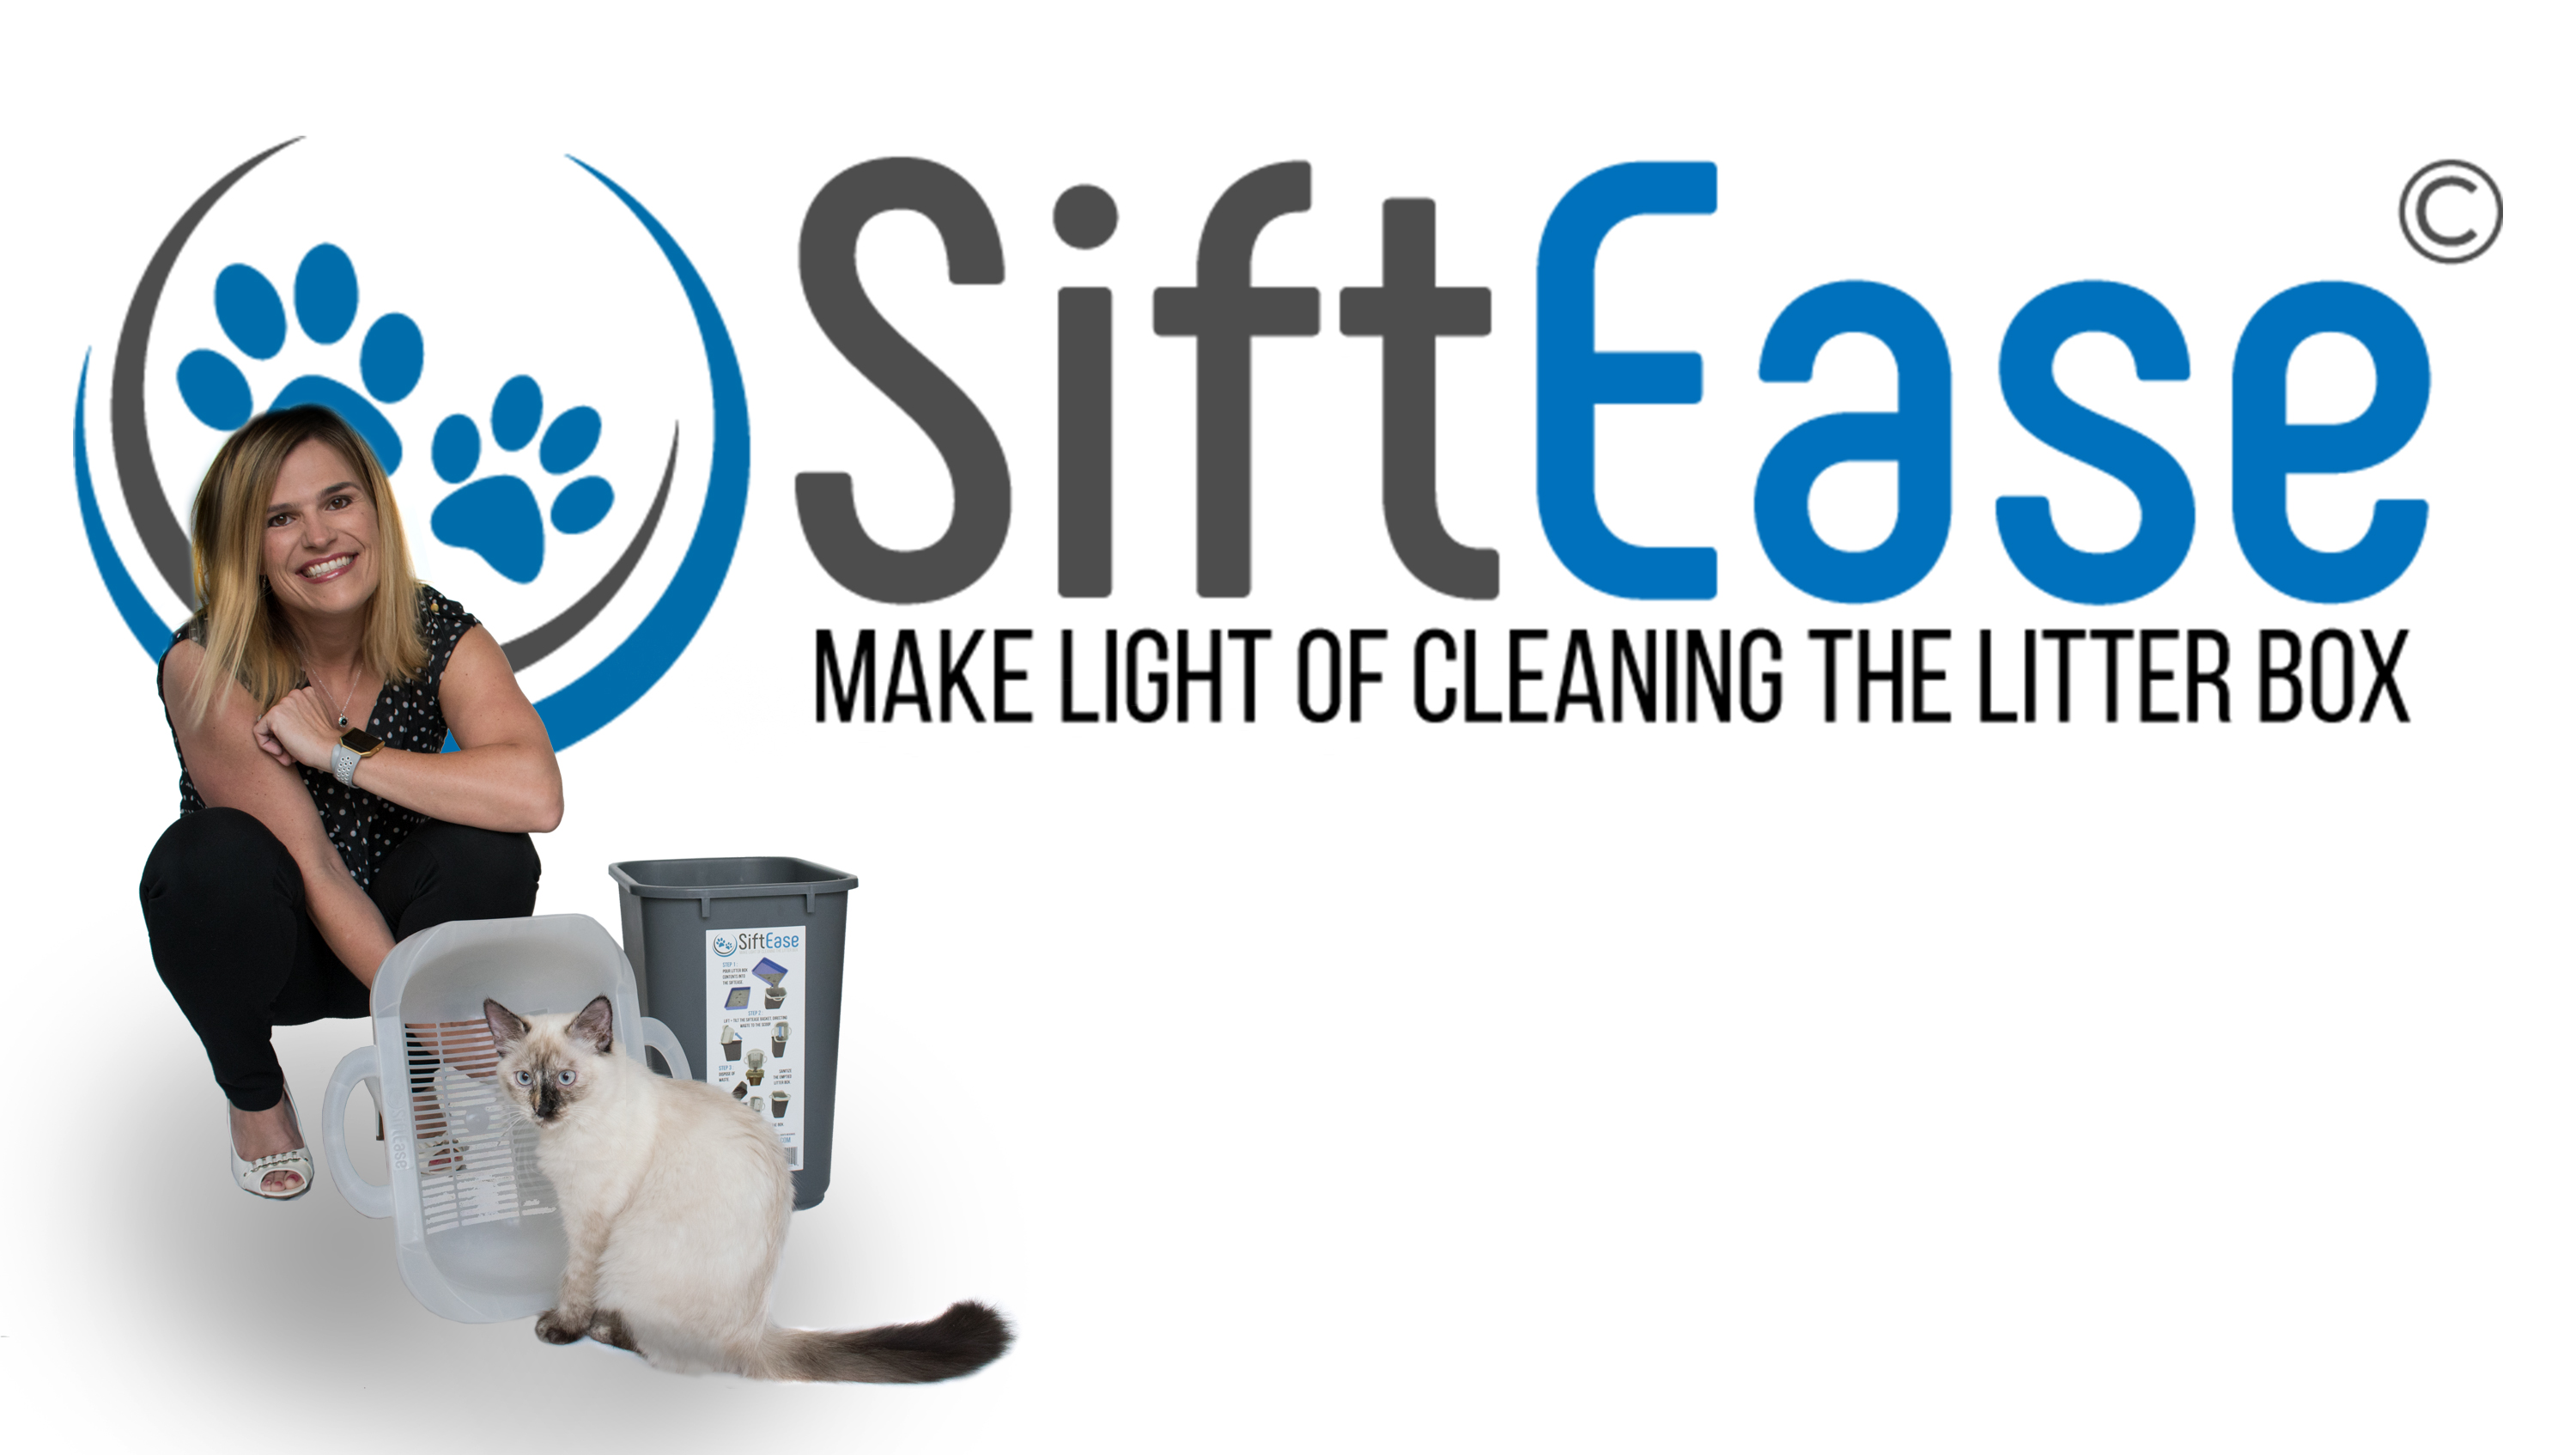 SiftEase an eaiser way to clean the litter box cleaning how to cat which litter box smell